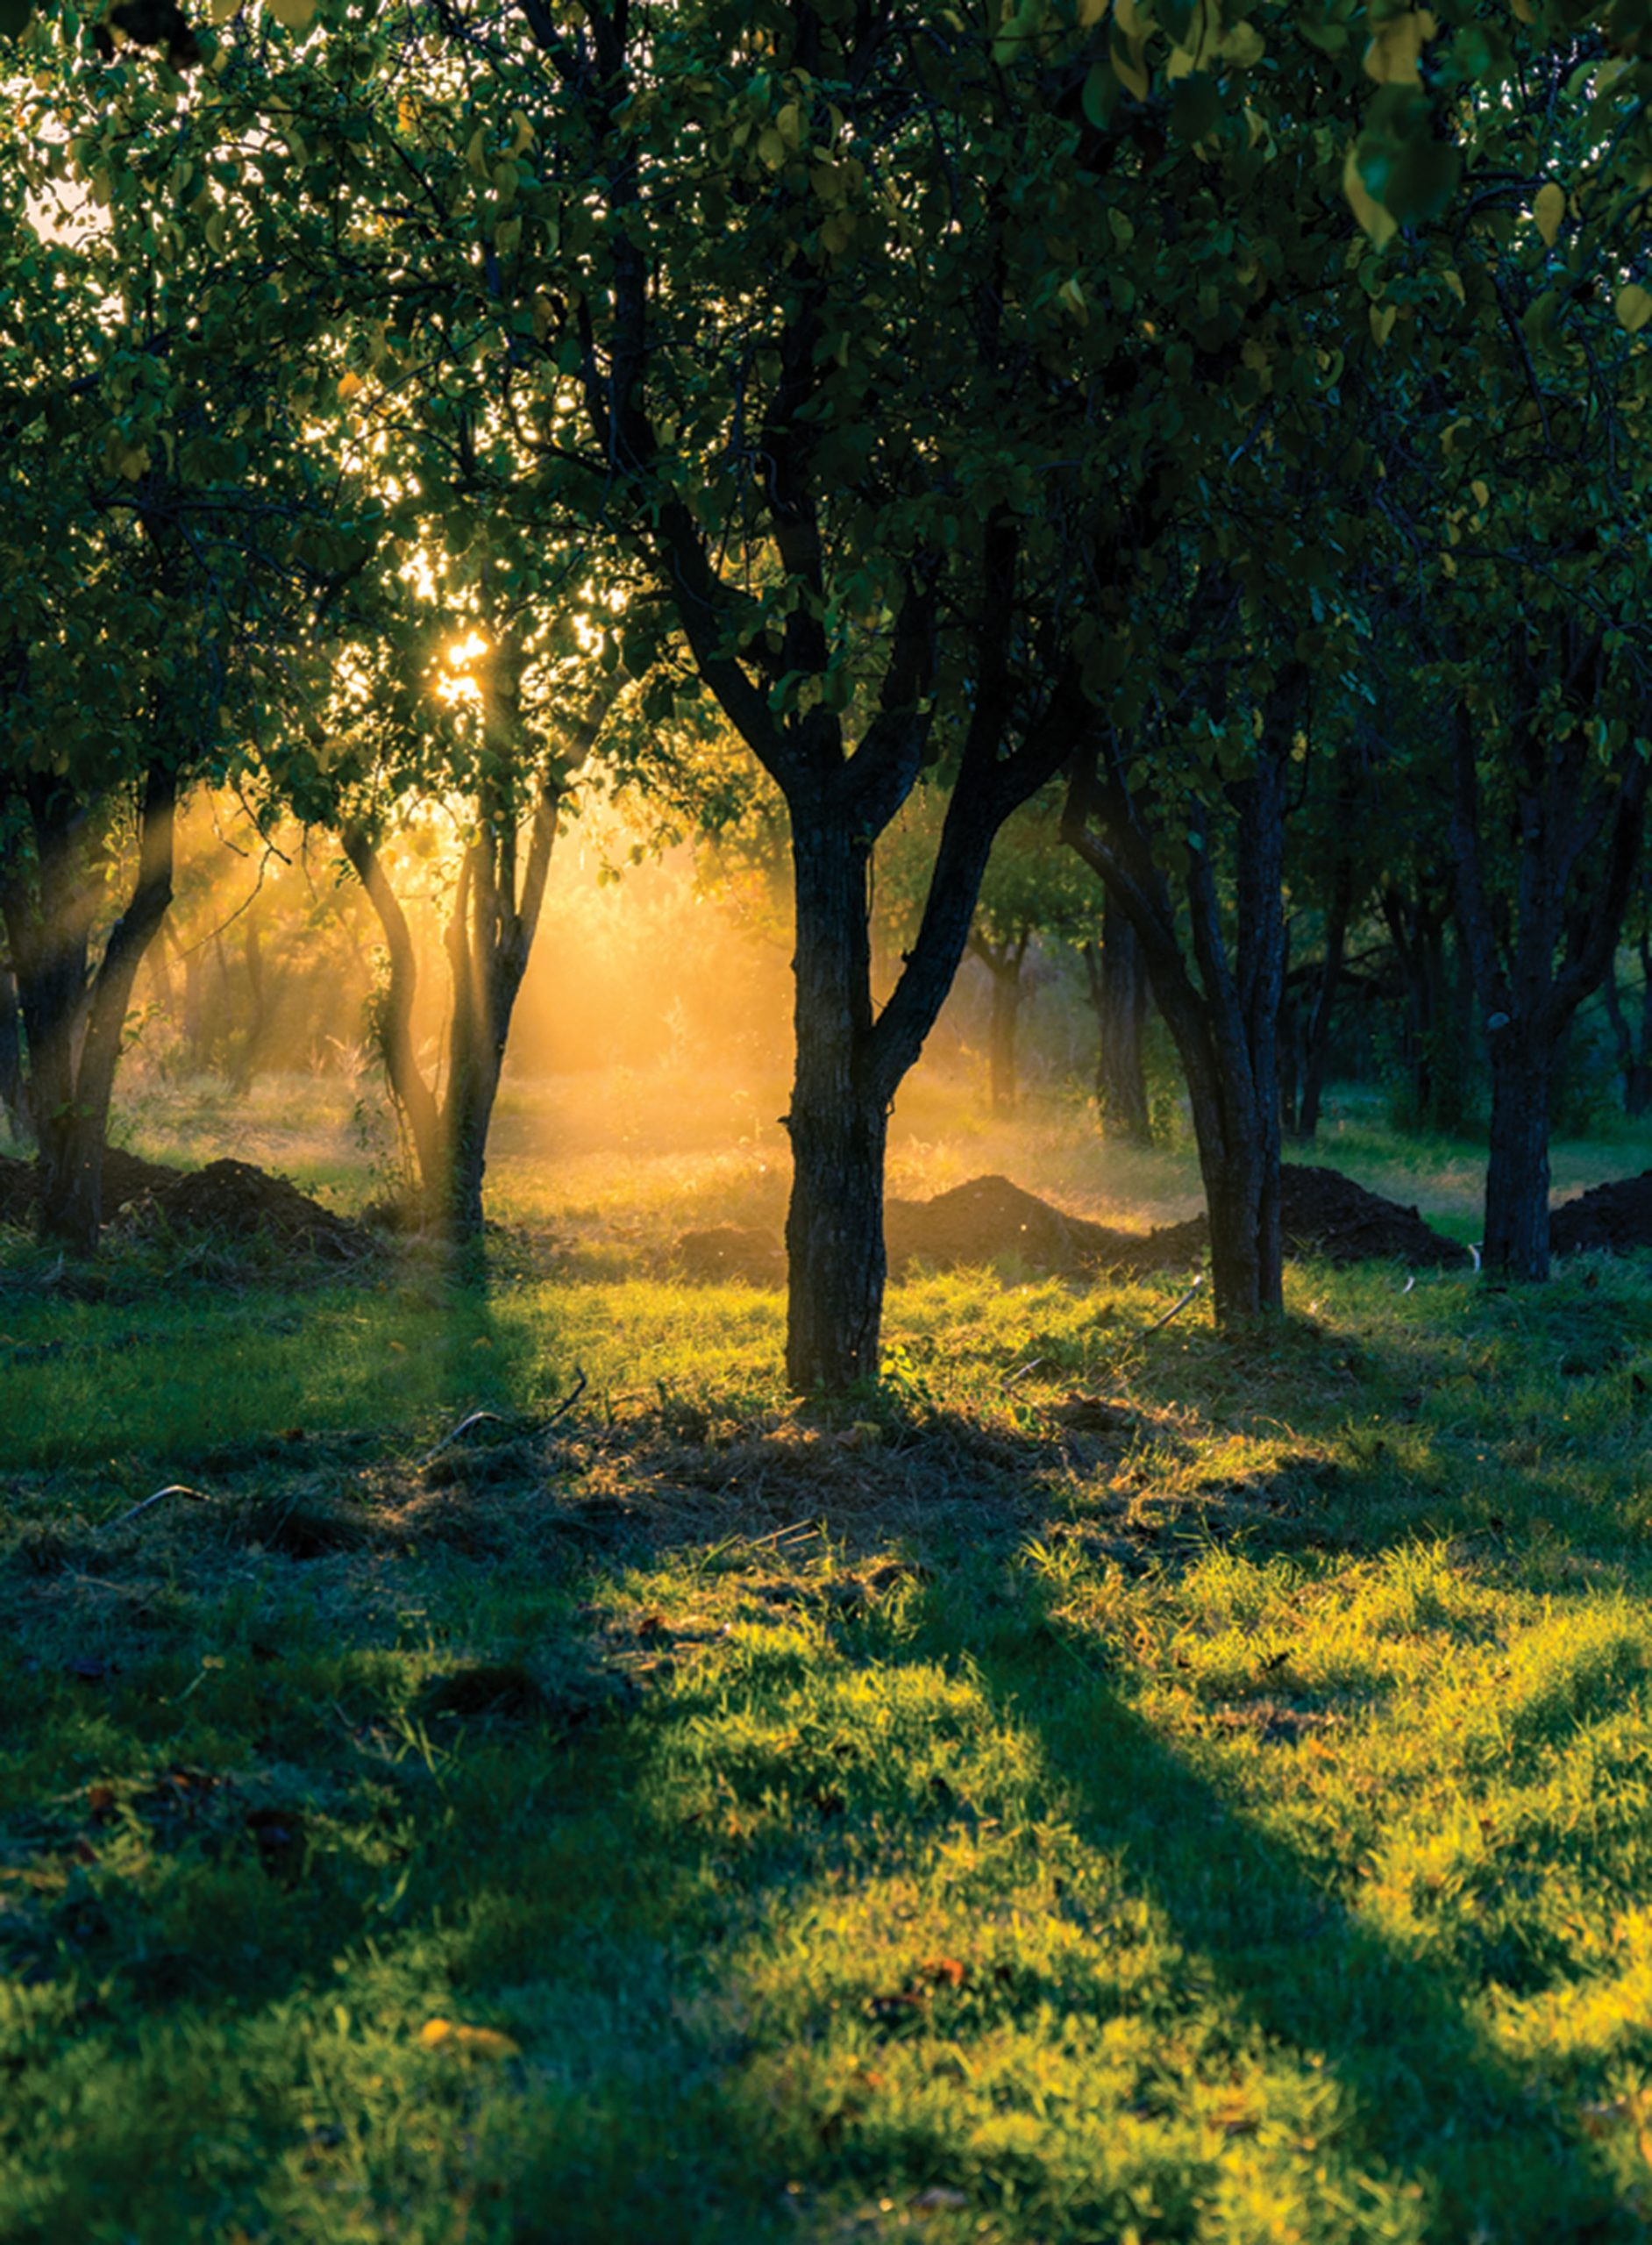 sunlit orchard; Photo by Jack H. Taylor